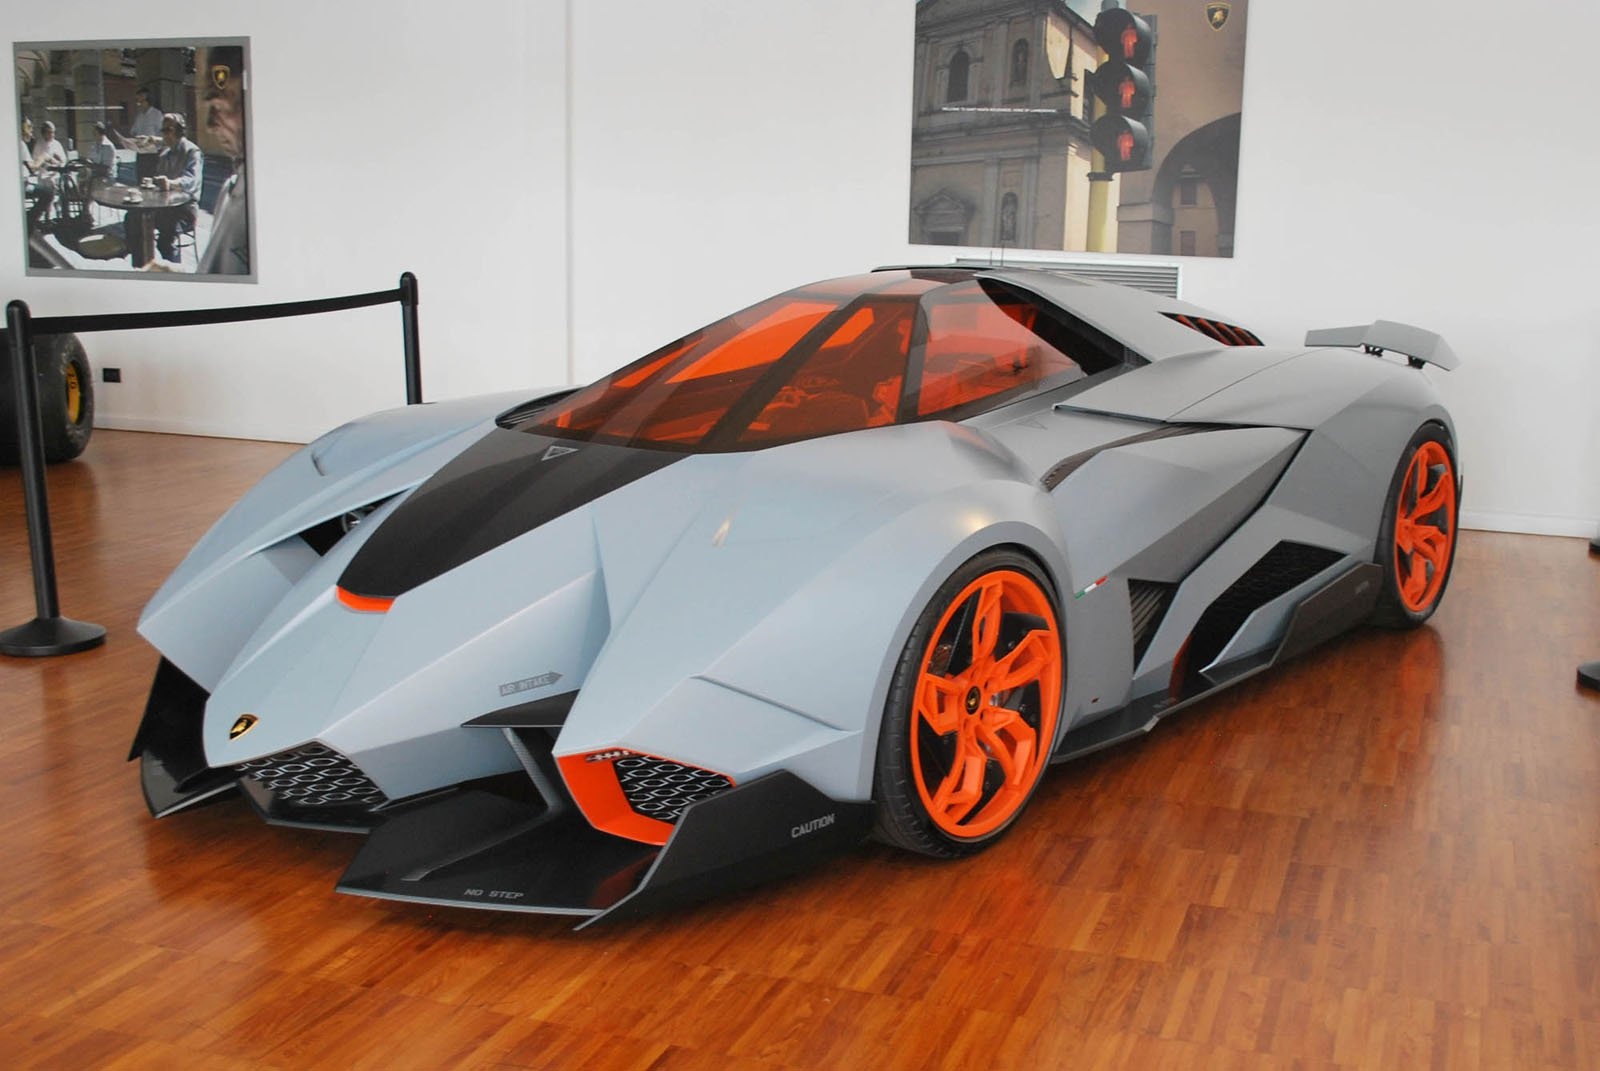 Why The Lamborghini Egoista Really is the Most Selfish Car in the World